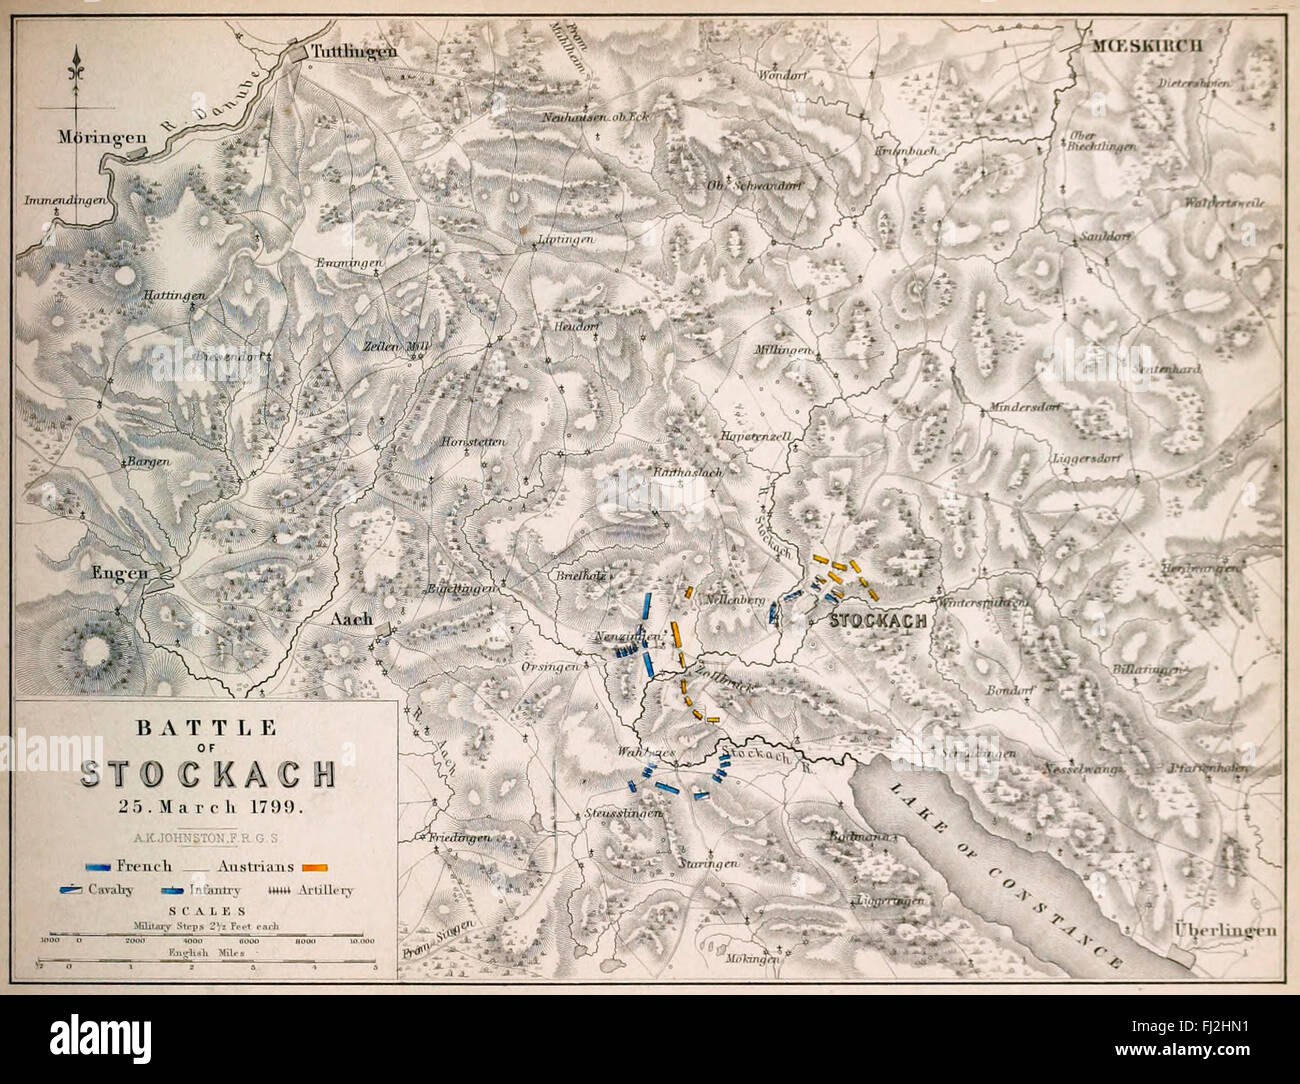 Map of Battle of Stockach - The First Battle of Stockach occurred on 25 March 1799, when French and Austrian armies - Stock Image